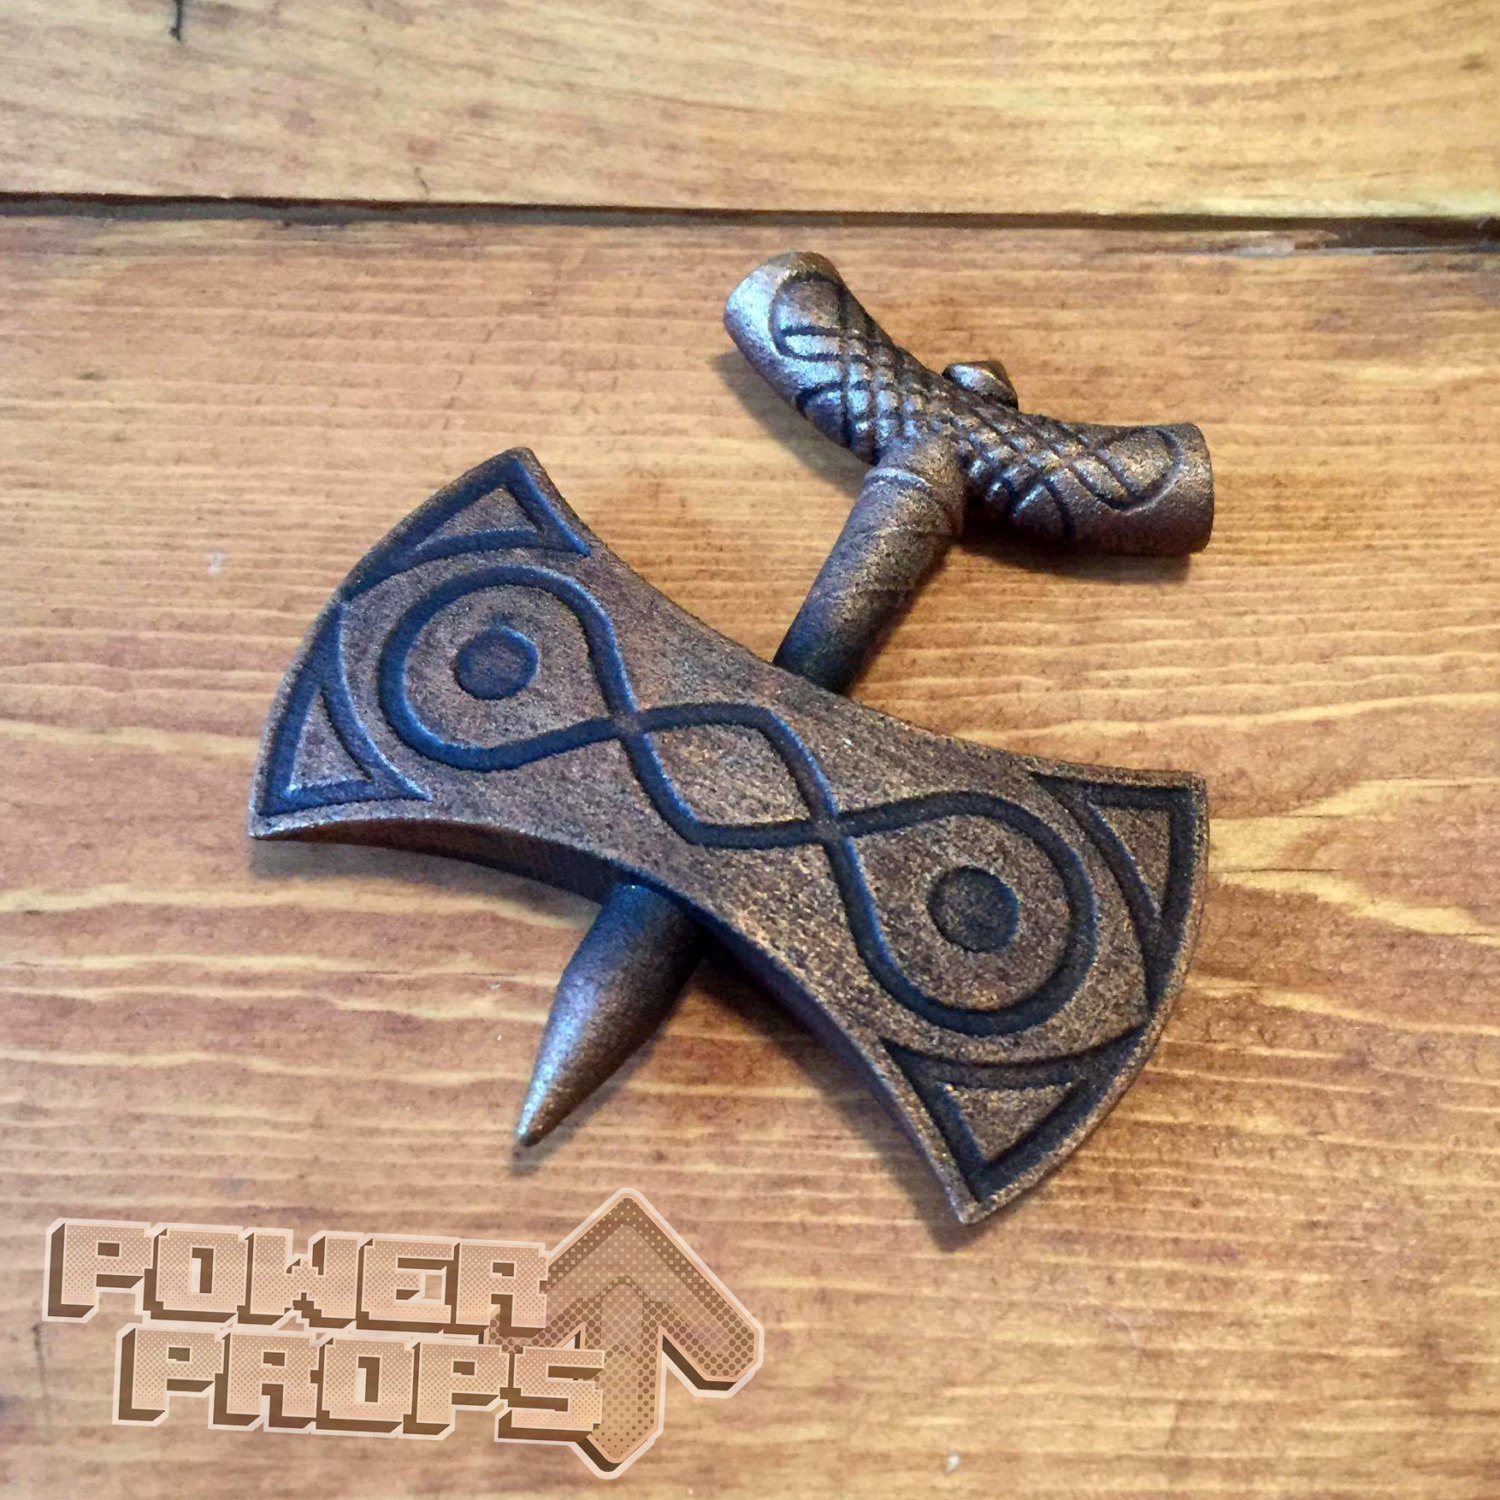 Amulet Of Talos need to shout more? 3d print this amulet of talos from